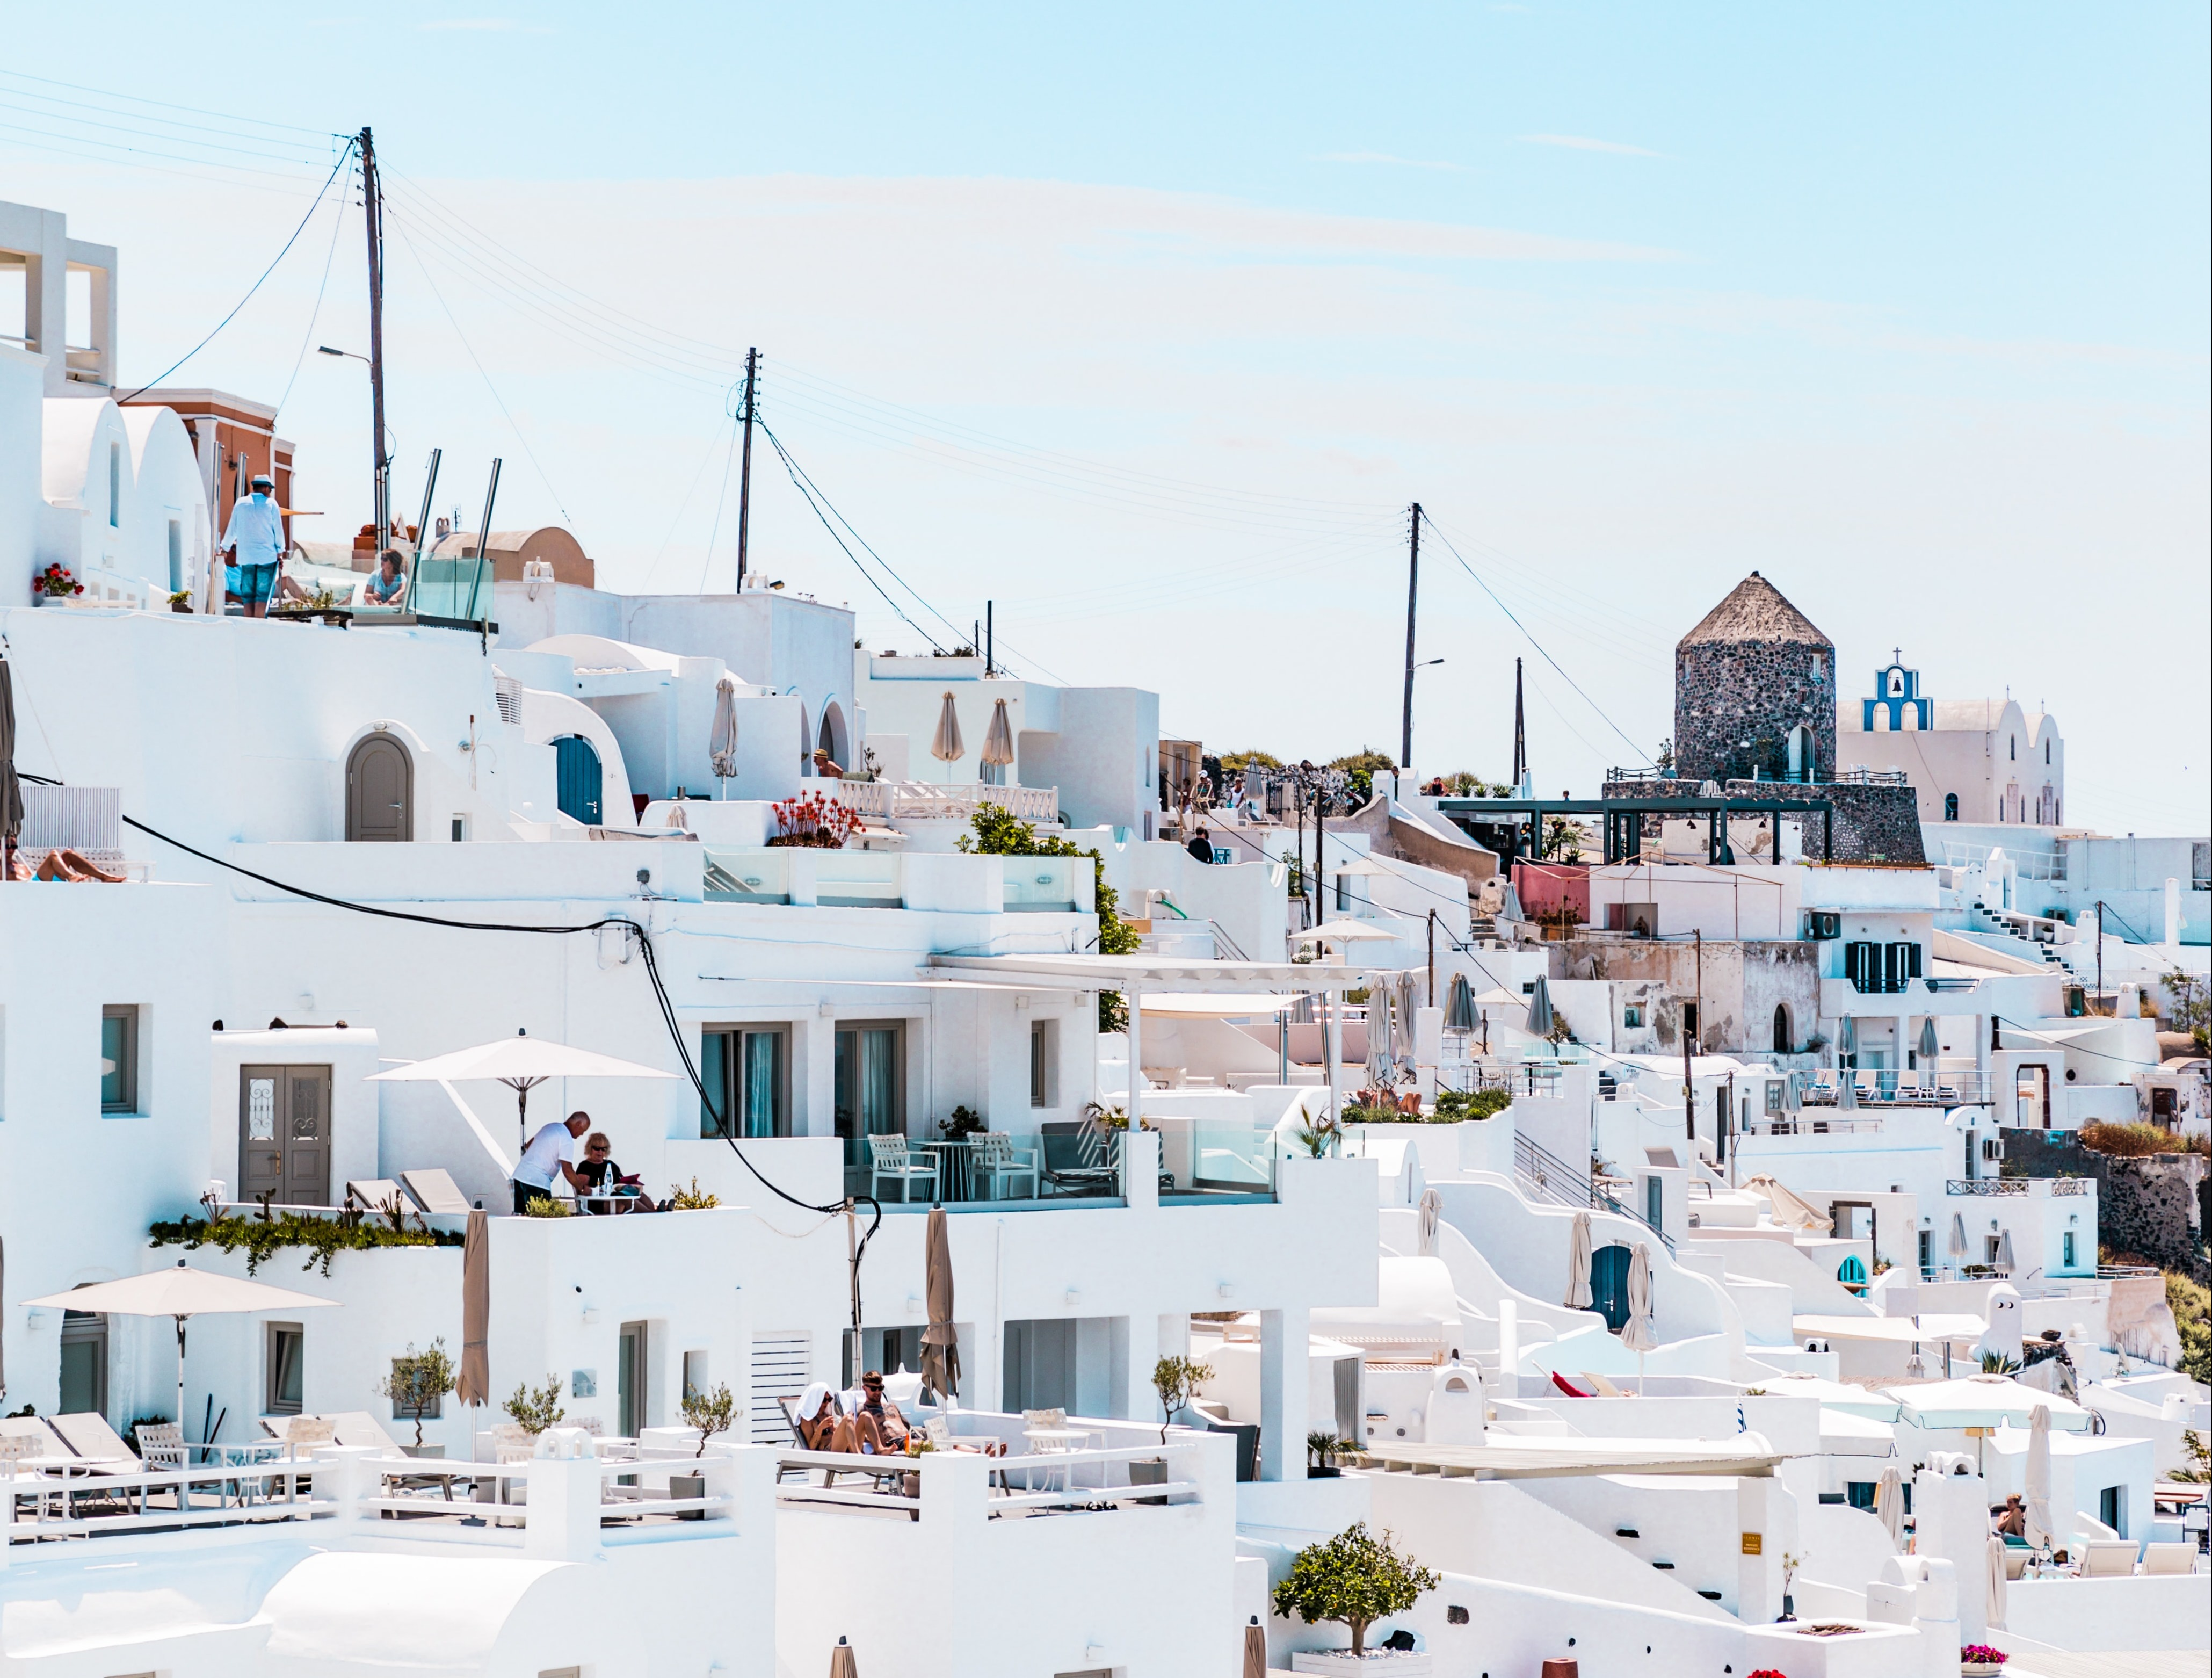 Greece covered in white buildings.